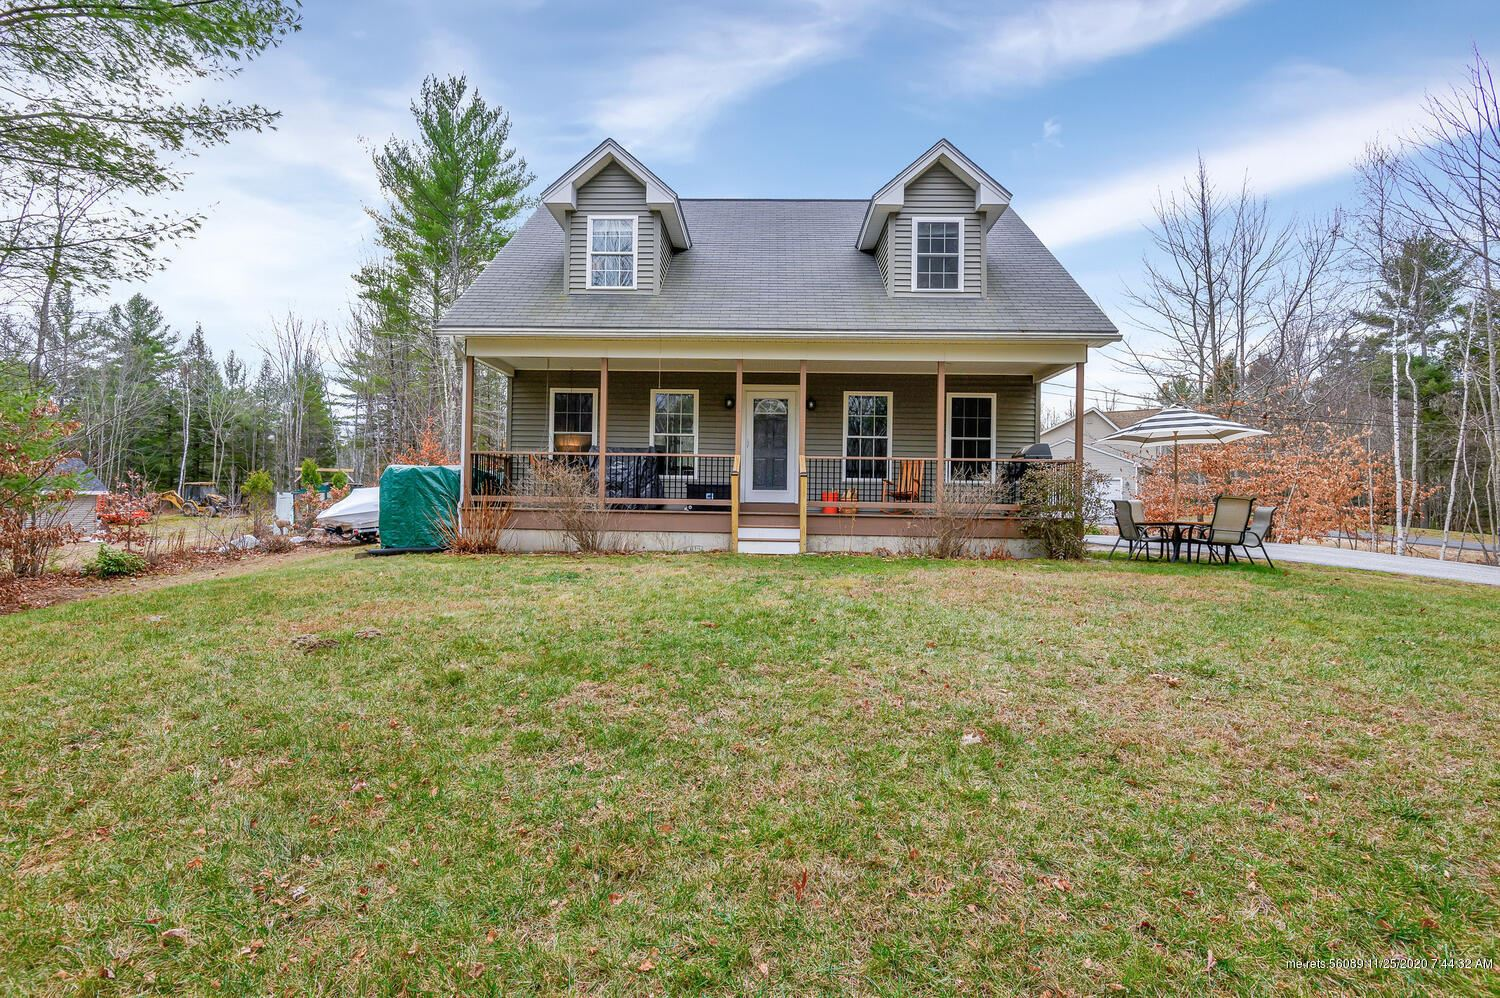 Photo of 15 Aurora Drive, Gray, ME 04039 (MLS # 1476875)